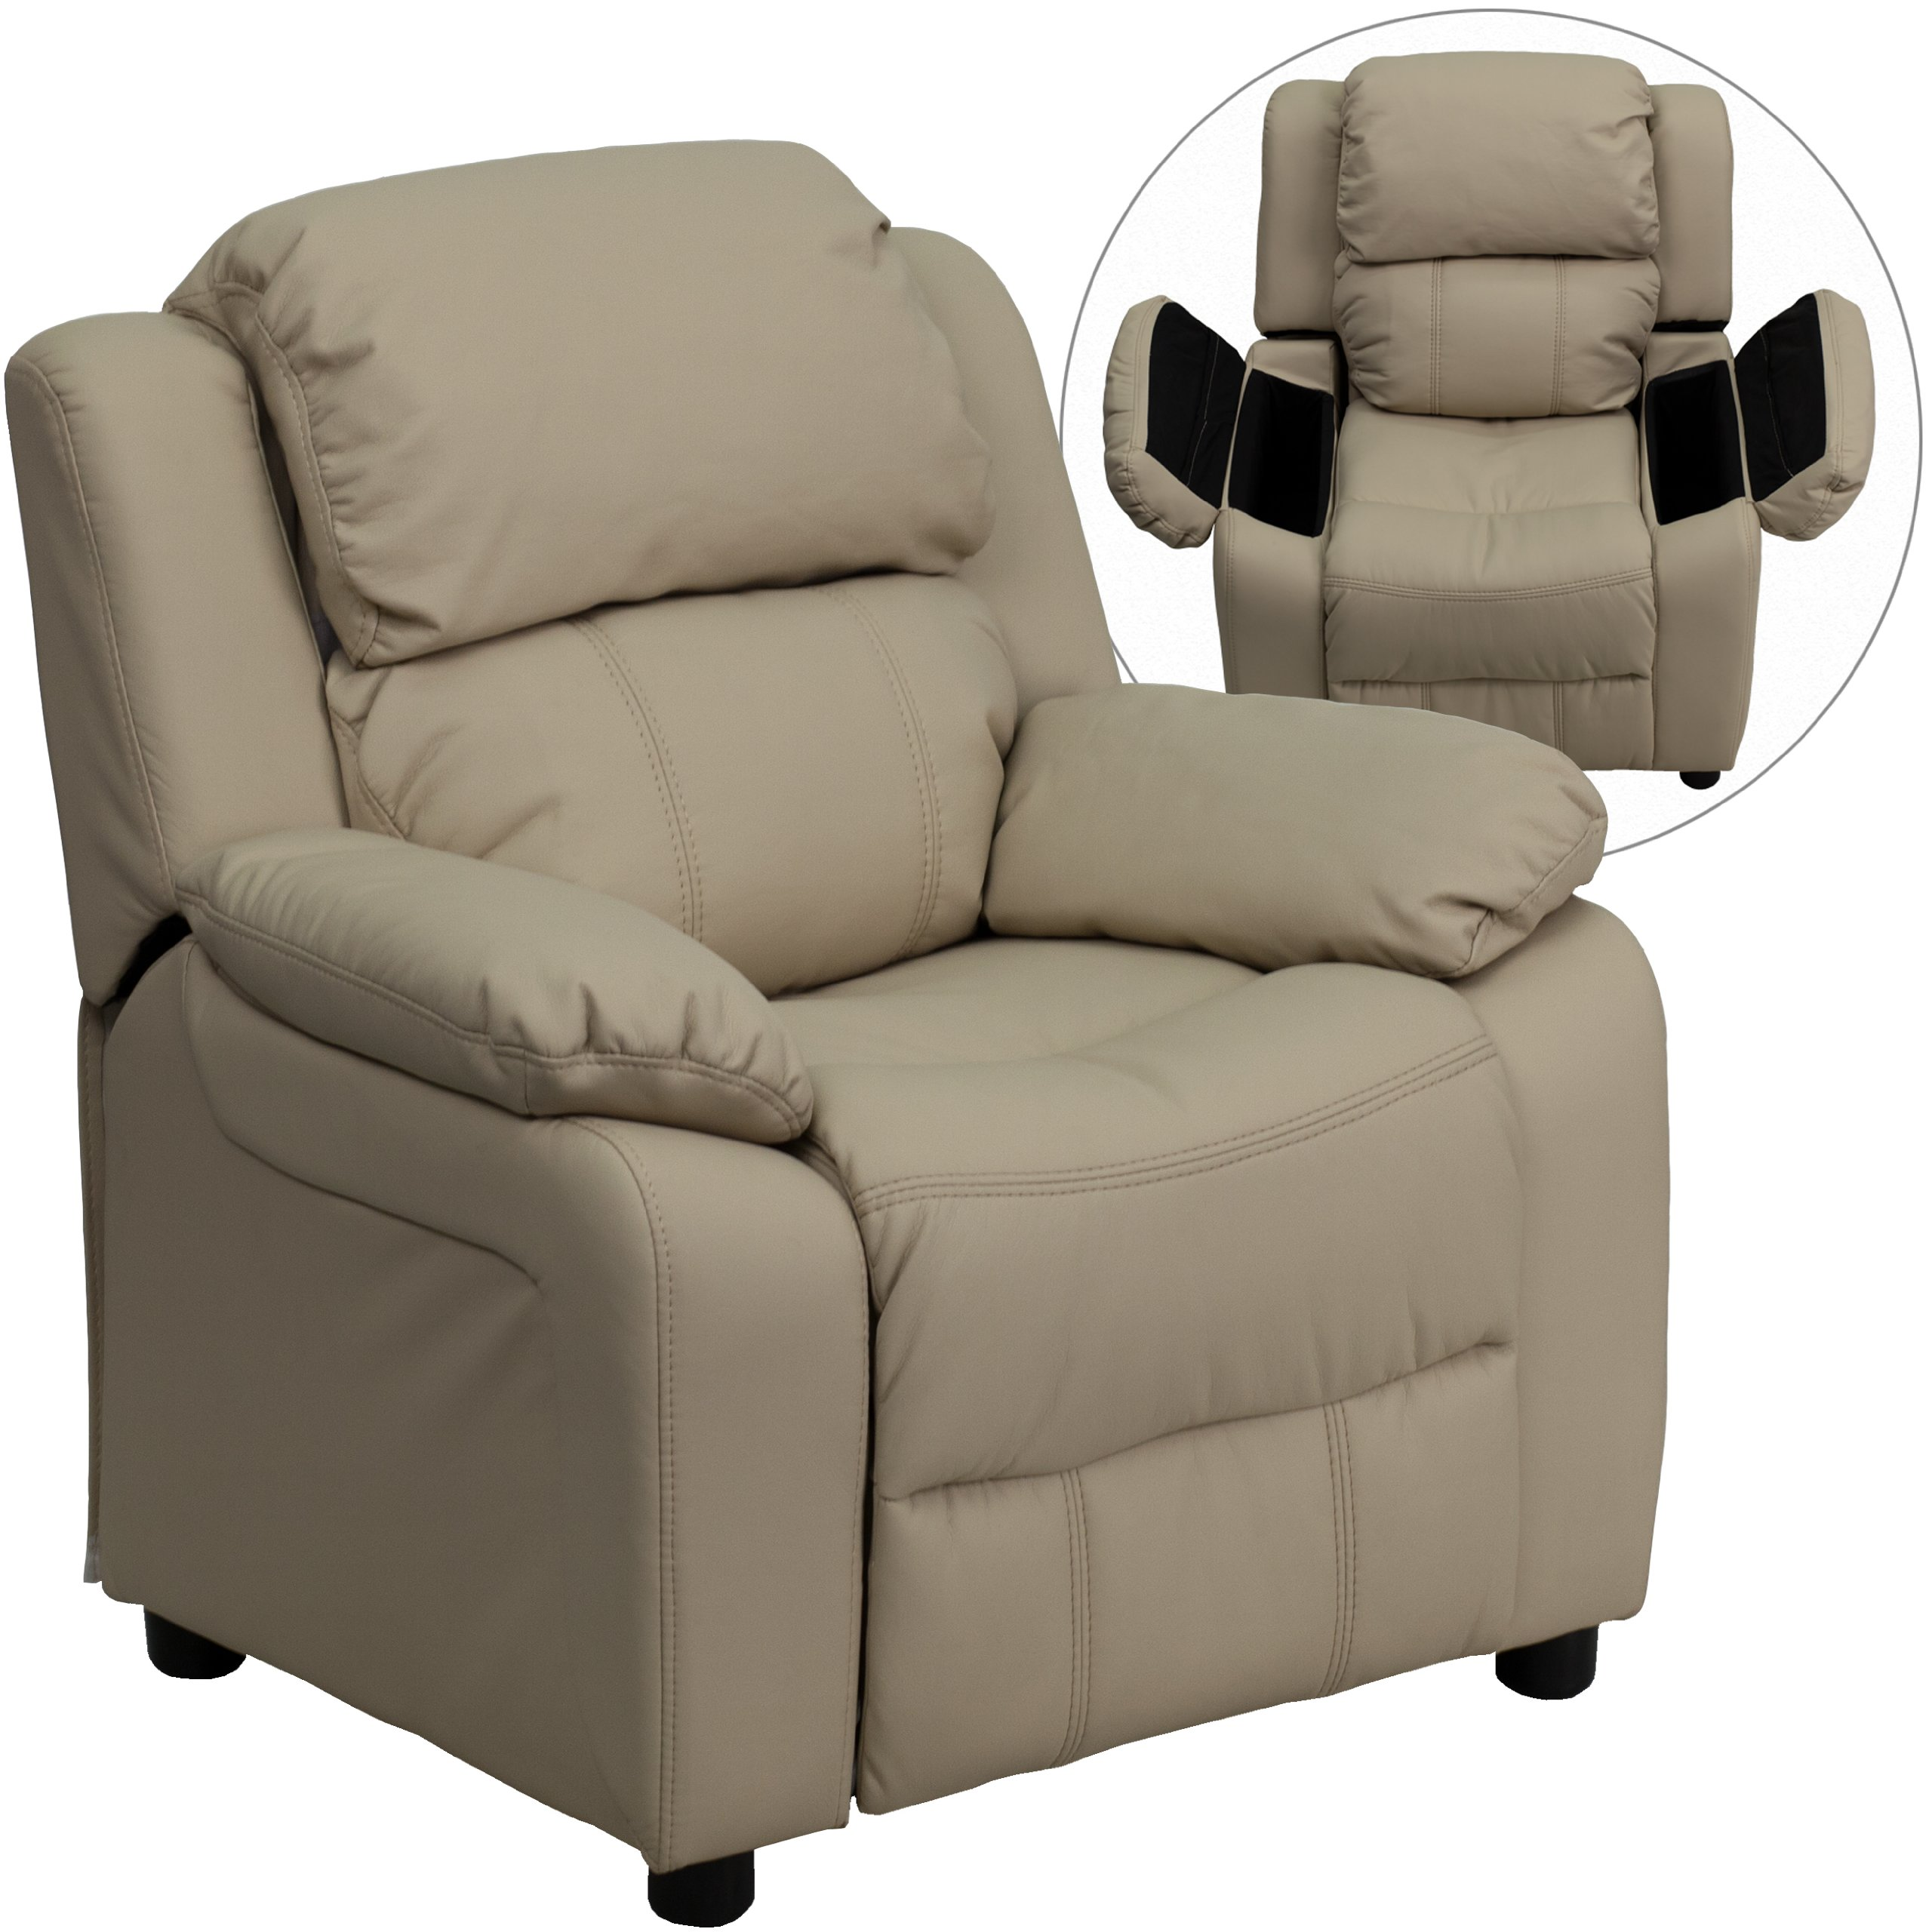 Winston Direct Kids' Series Deluxe Padded Contemporary Beige Vinyl Recliner with Storage Arms